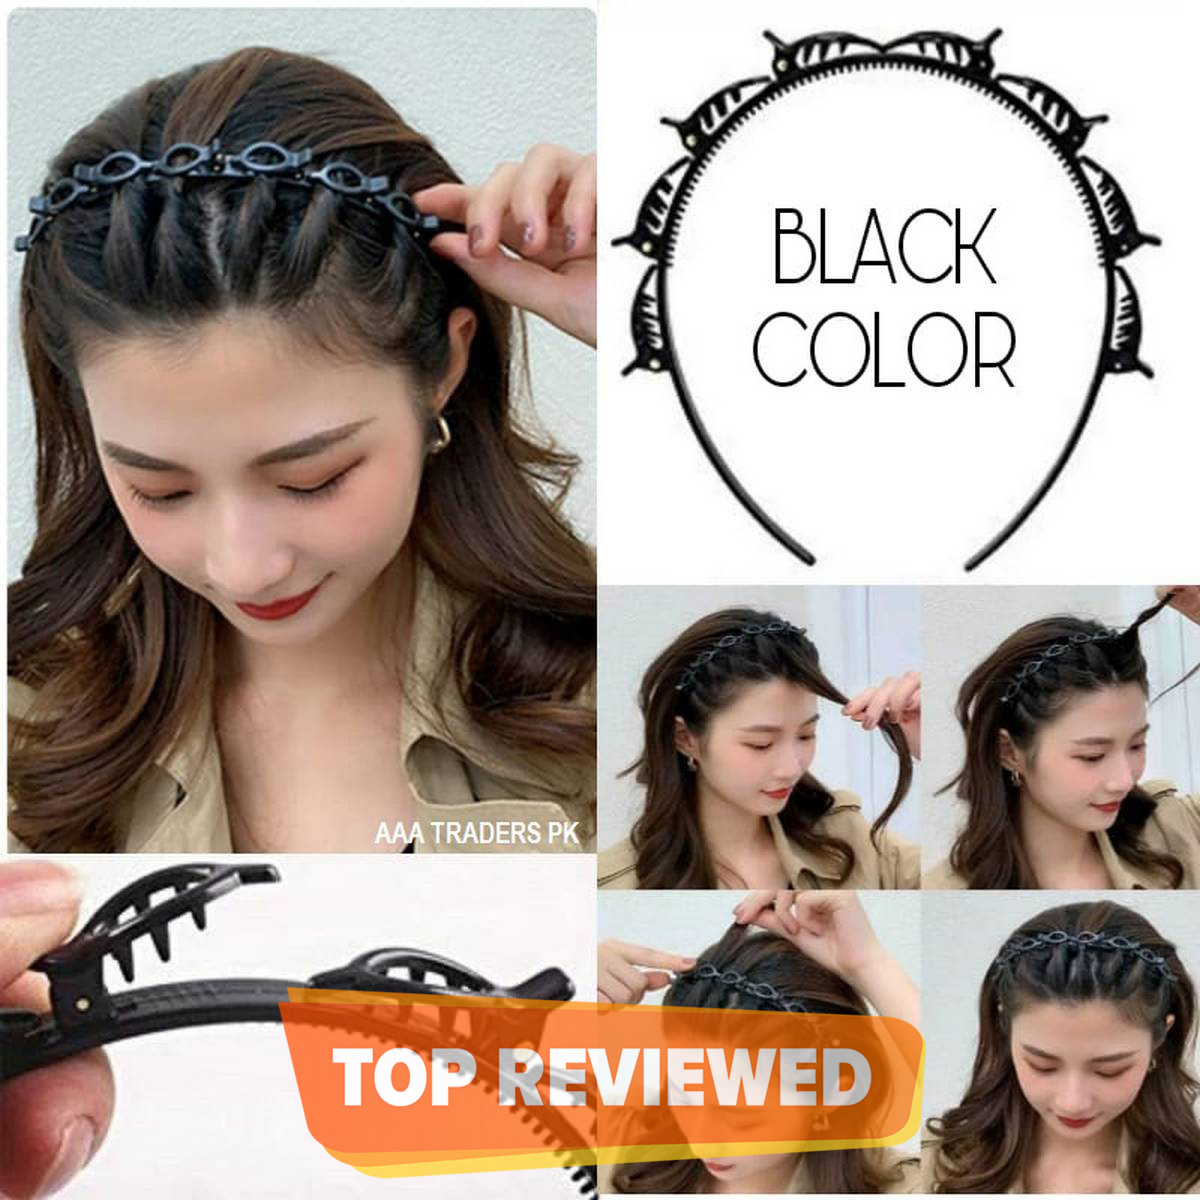 Double Layer Twist Plait Headband Hair Tools Bangs Hairstyle Hairpin Multi-Layer Hollow Woven Headband